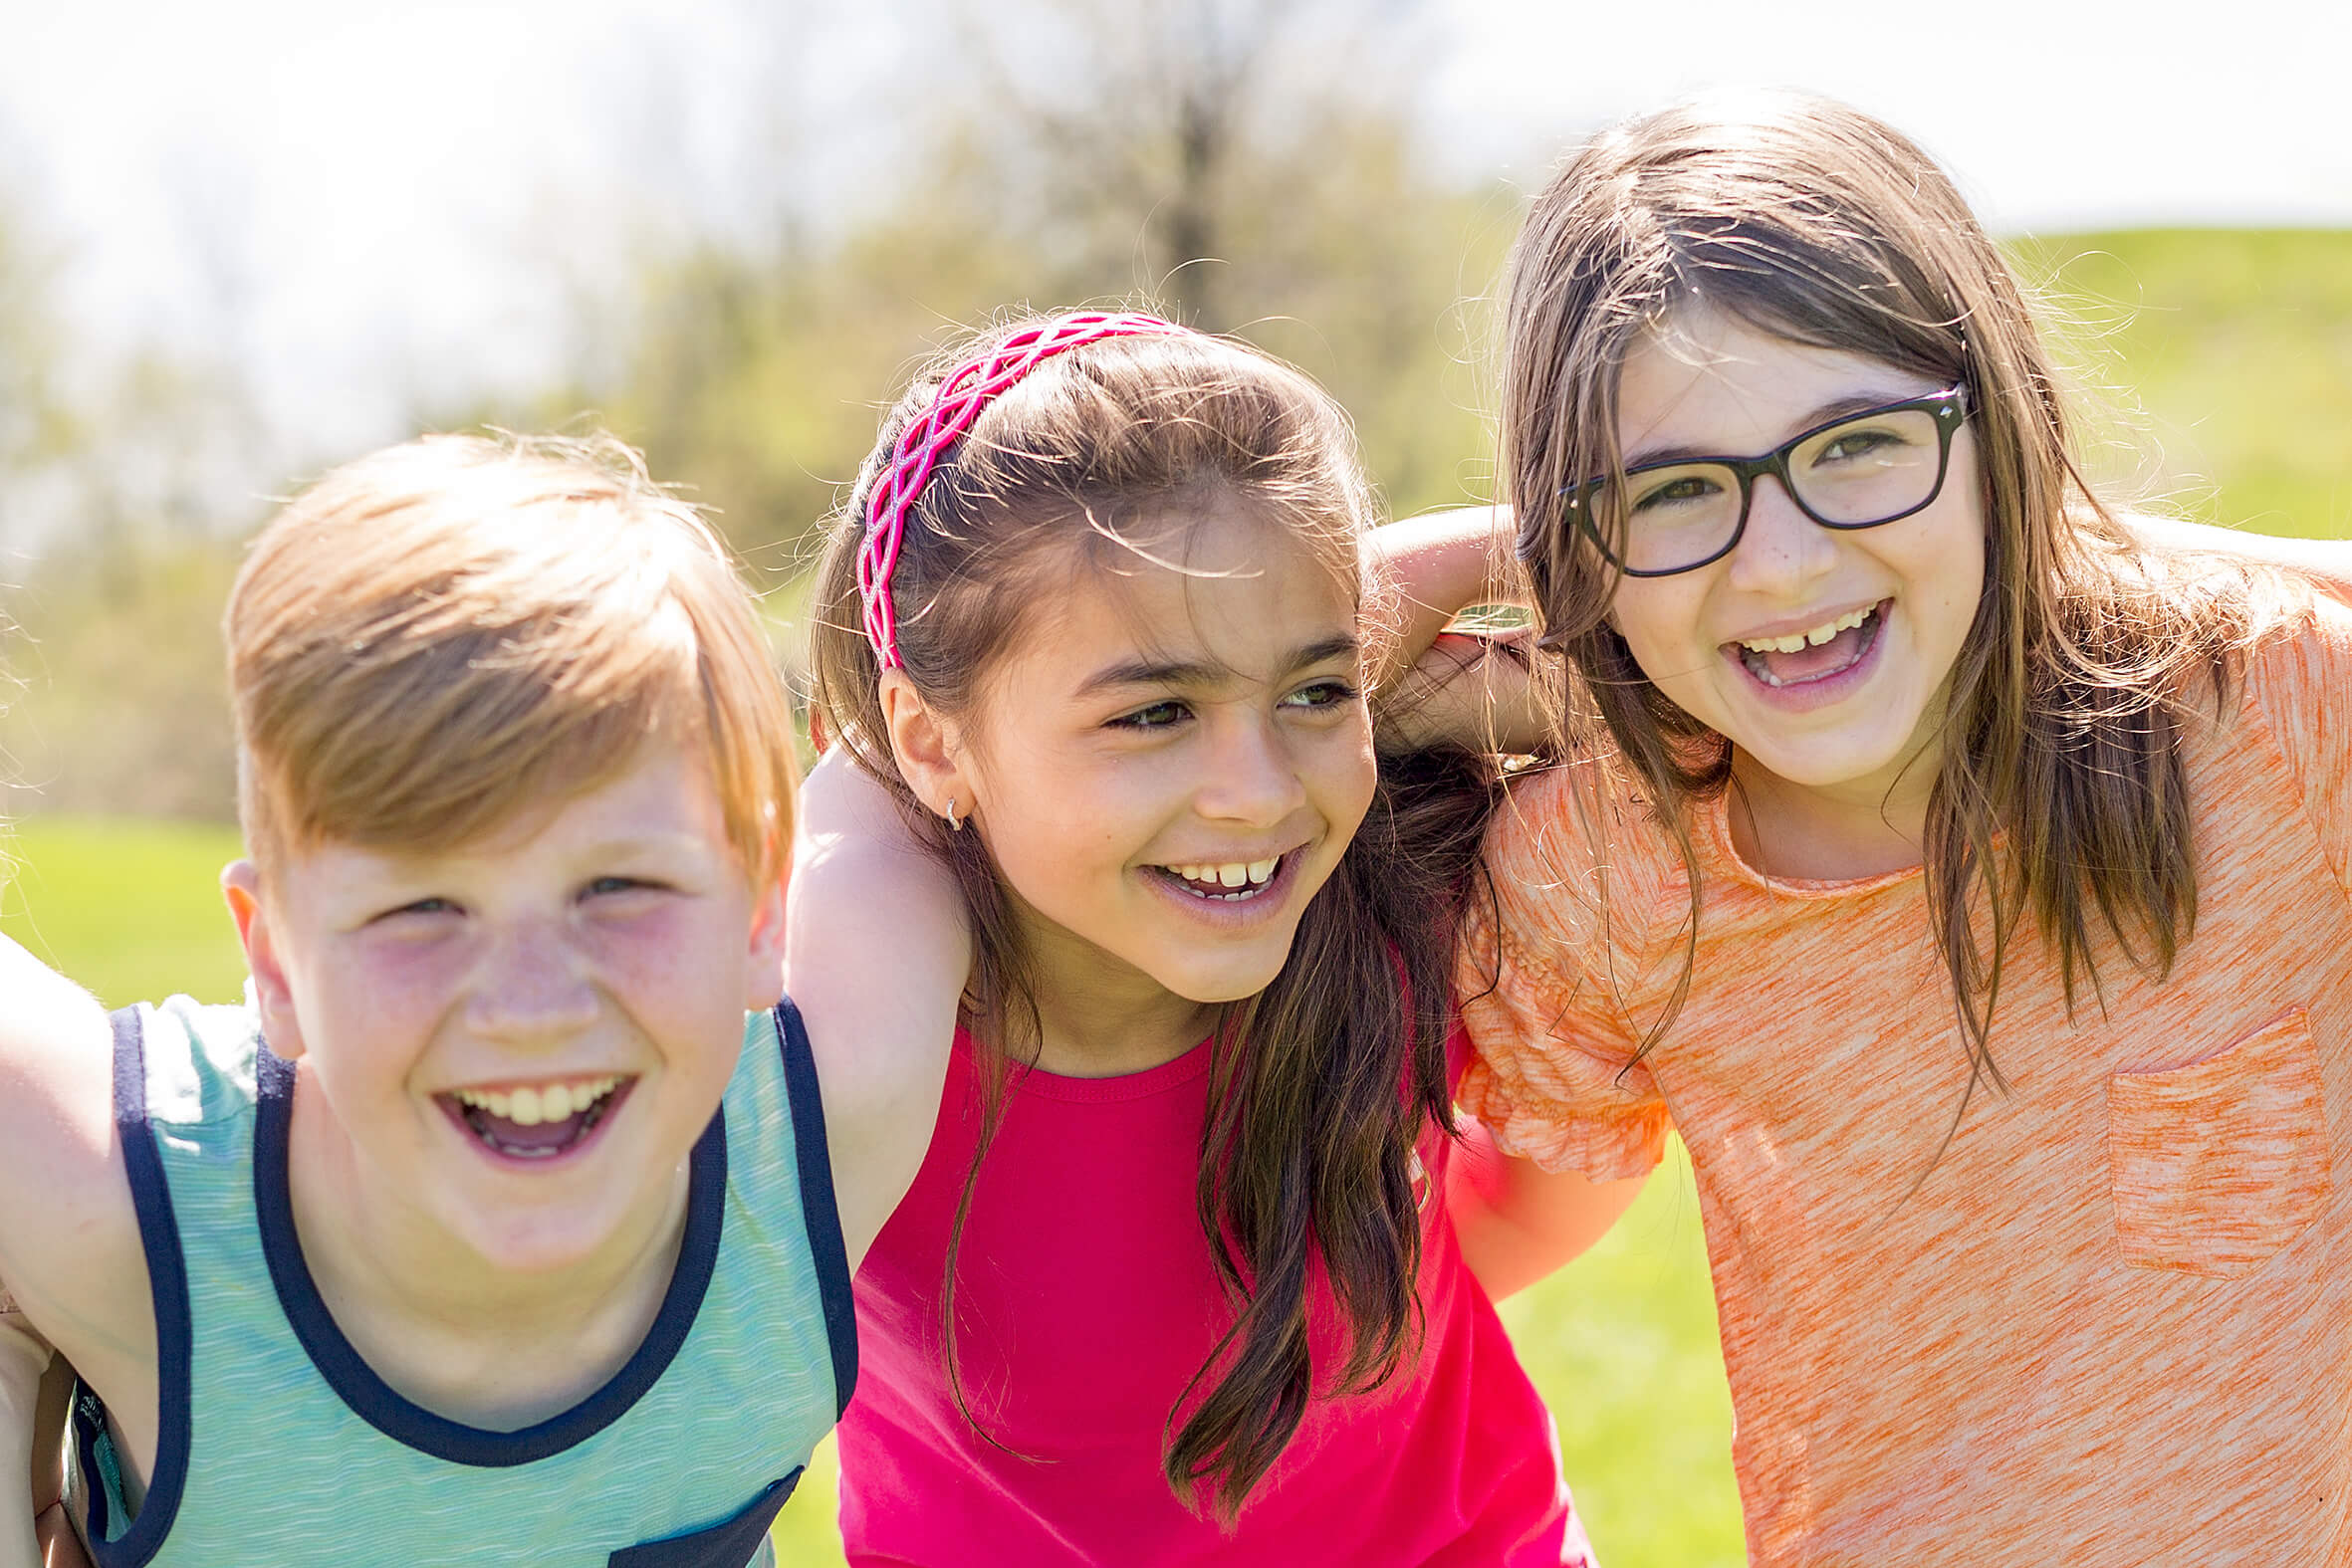 Group Of Child Have Fun On A Field Fotocredit: AdobeStock